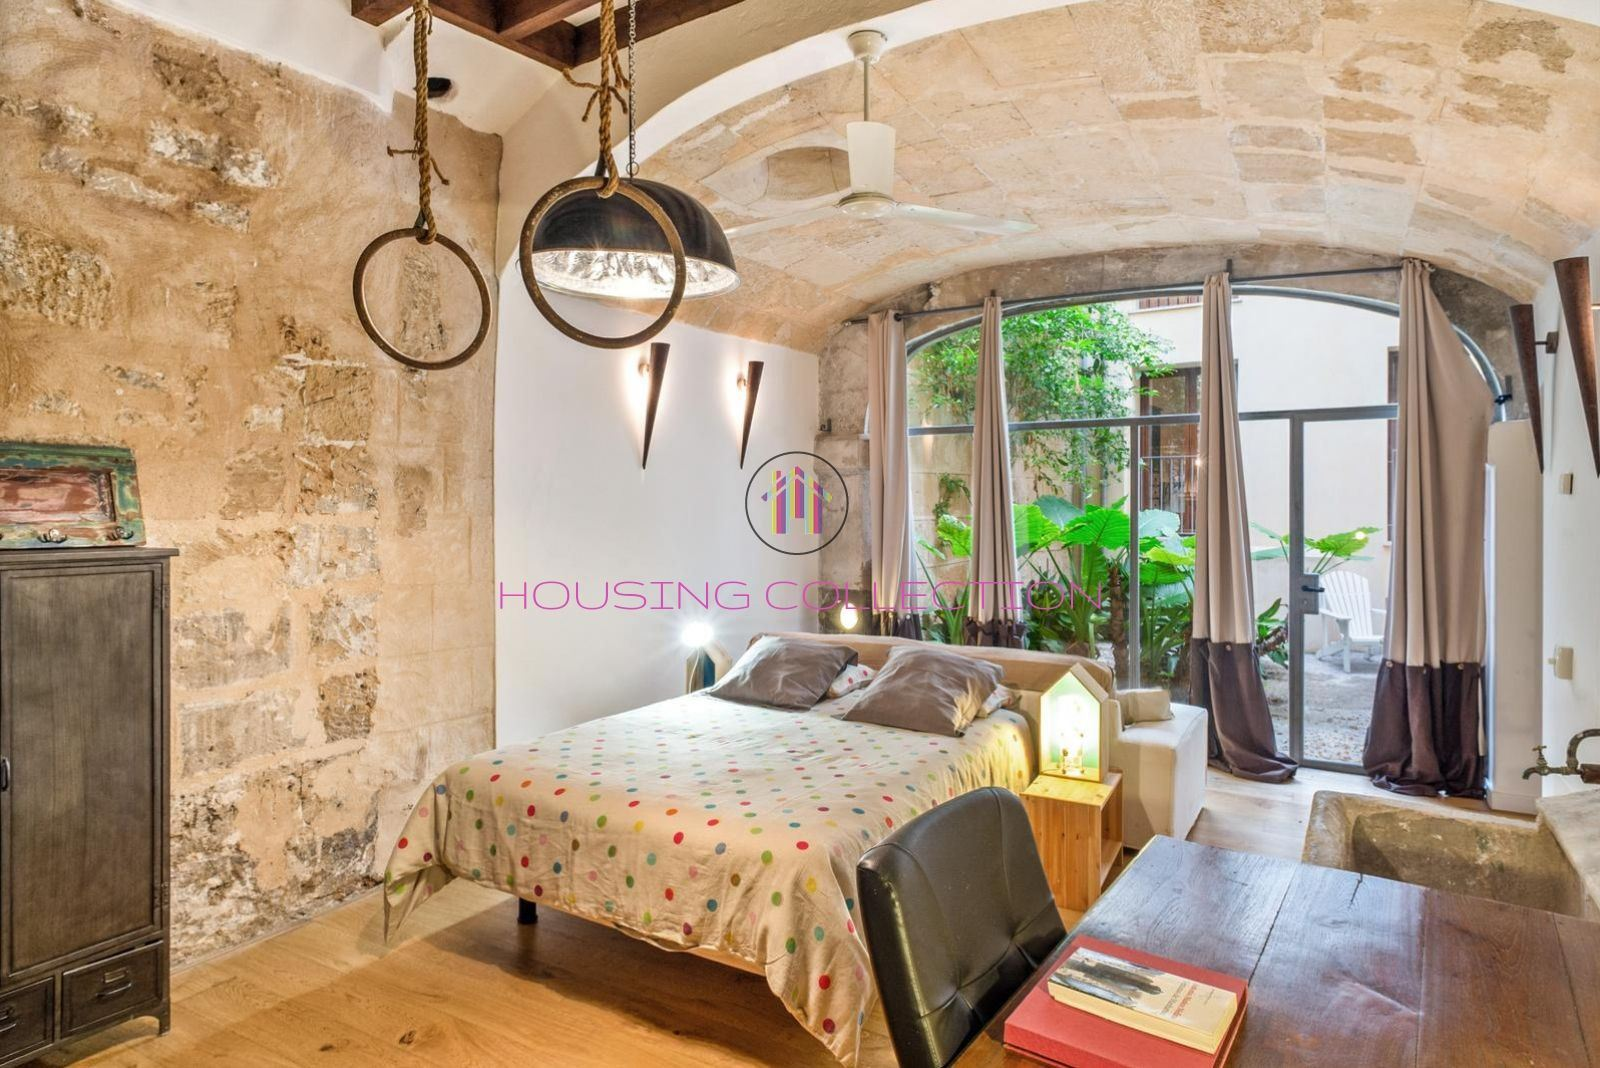 ¡ESPECTACULAR VIVIENDA DÚPLEX CON PATIO EN CASCO ANTIGUO!